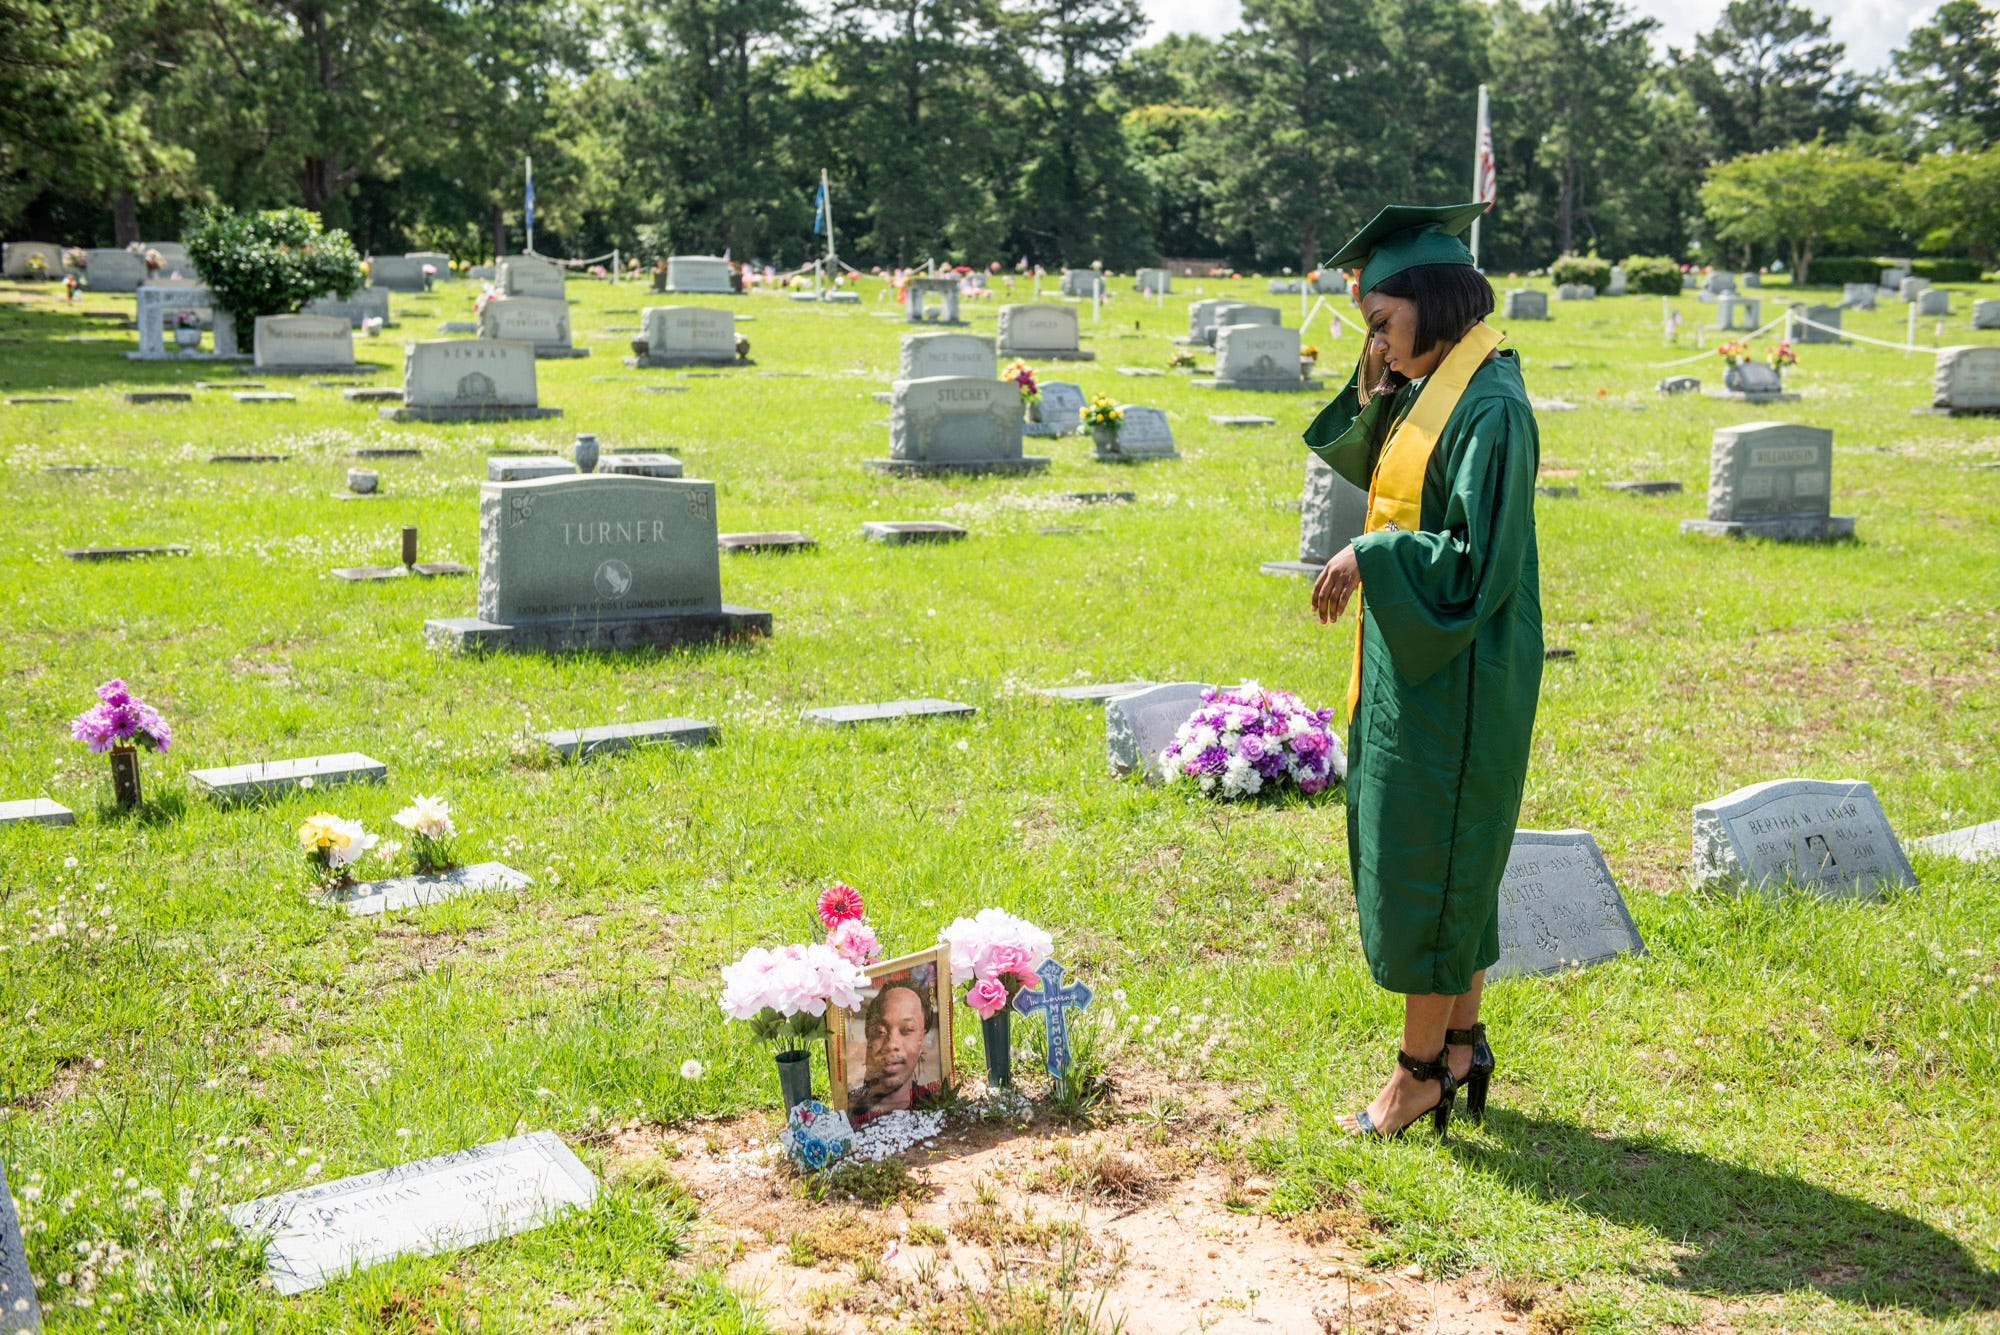 Helen Brown visits the gravesite of her boyfriend, Ty'Riq Moon, after her graduation at Montgomery Memorial Cemetery in Montgomery, Ala., on Thursday, June 4, 2020. Moon was shot and killed at the Madison Ave. McDonalds in September 2019. Brown had promised Moon she was going to graduate and wanted him to see her in the cap and gown.